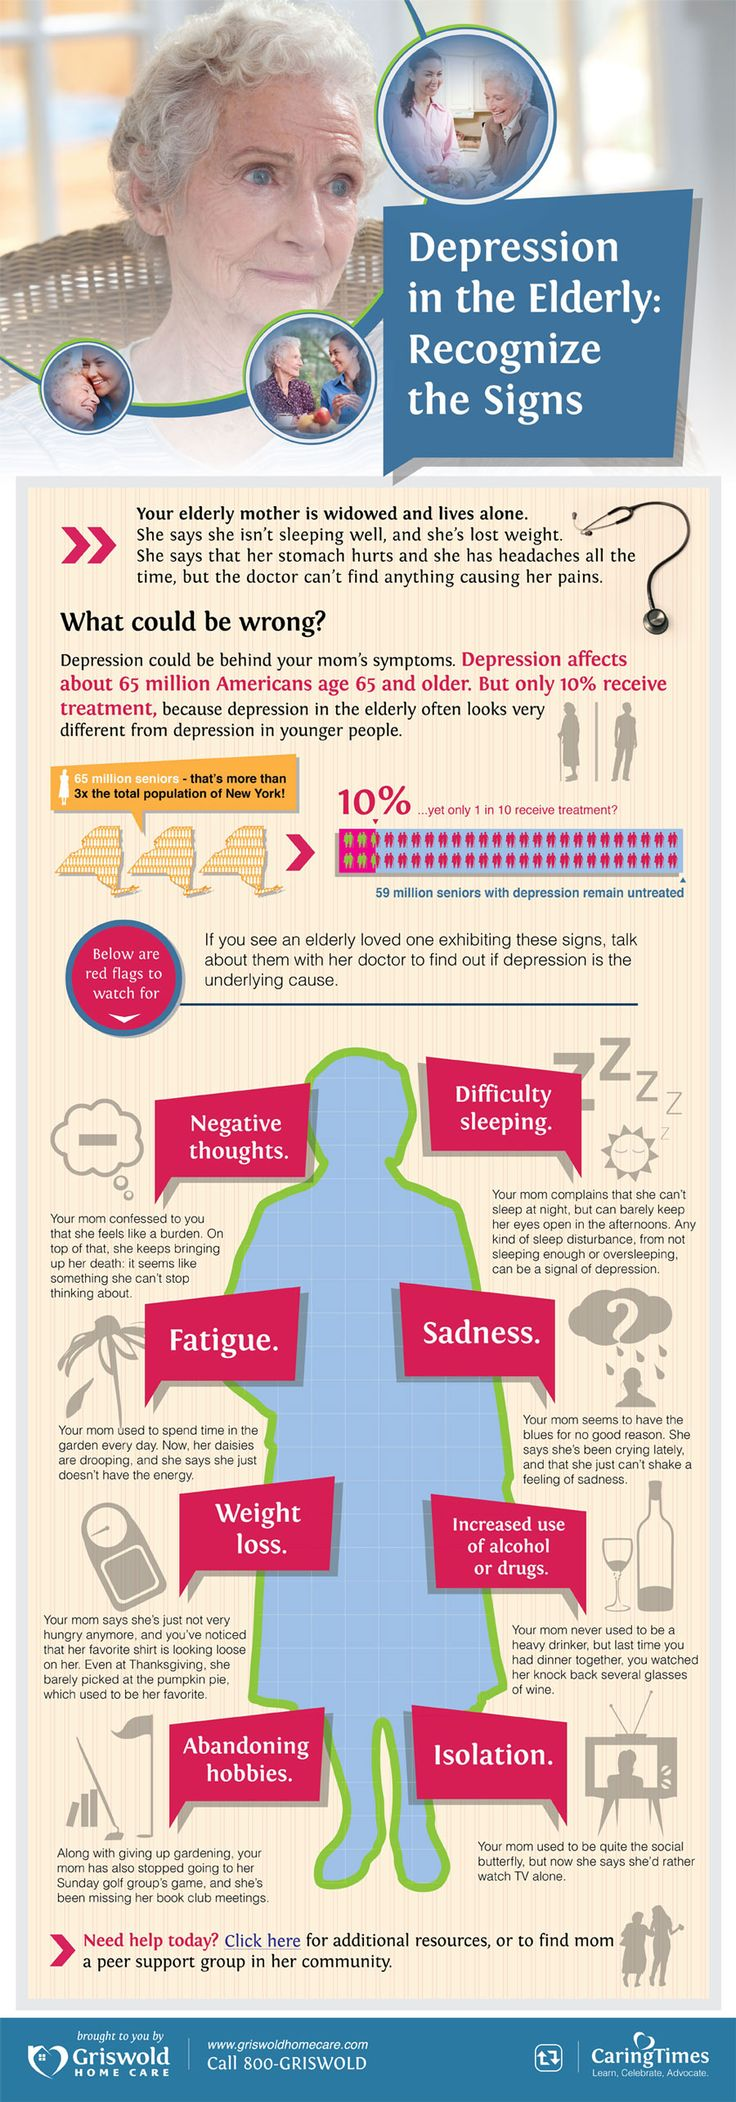 DEPRESSION IN THE ELDERLY INFOGRAPHIC | New Visions Healthcare Blog - www.healthcoverageally.com